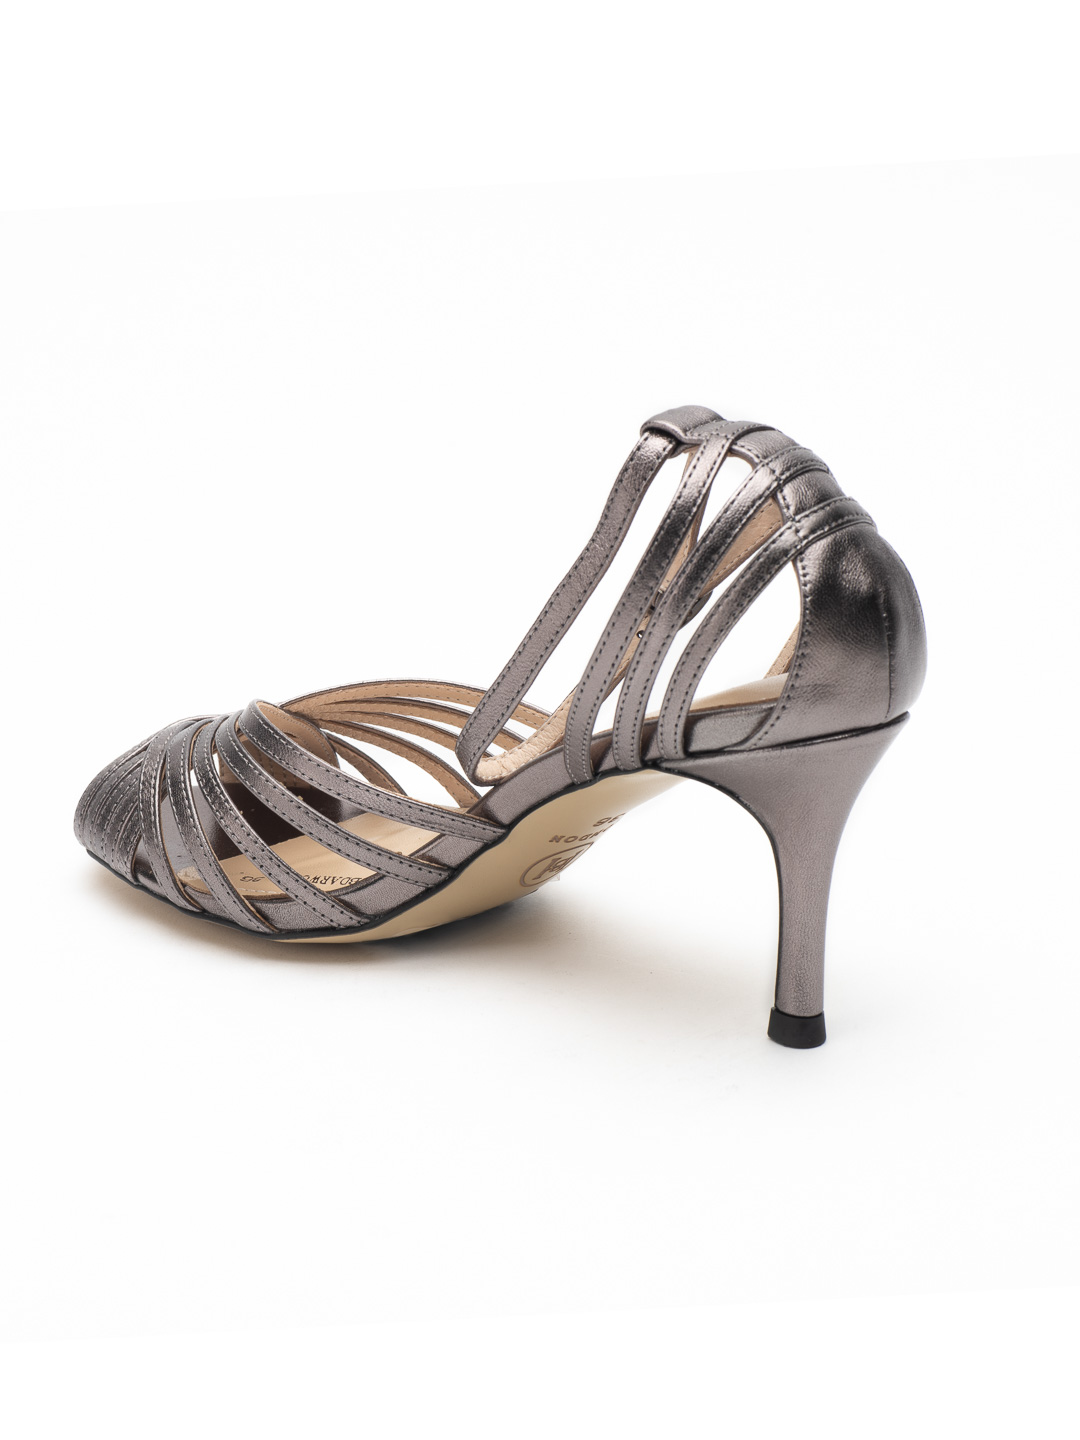 Heel & Buckle London-Shoes-HBDARW088-Metallic Gold Ankle Strap Sandals-Metallic grey-3